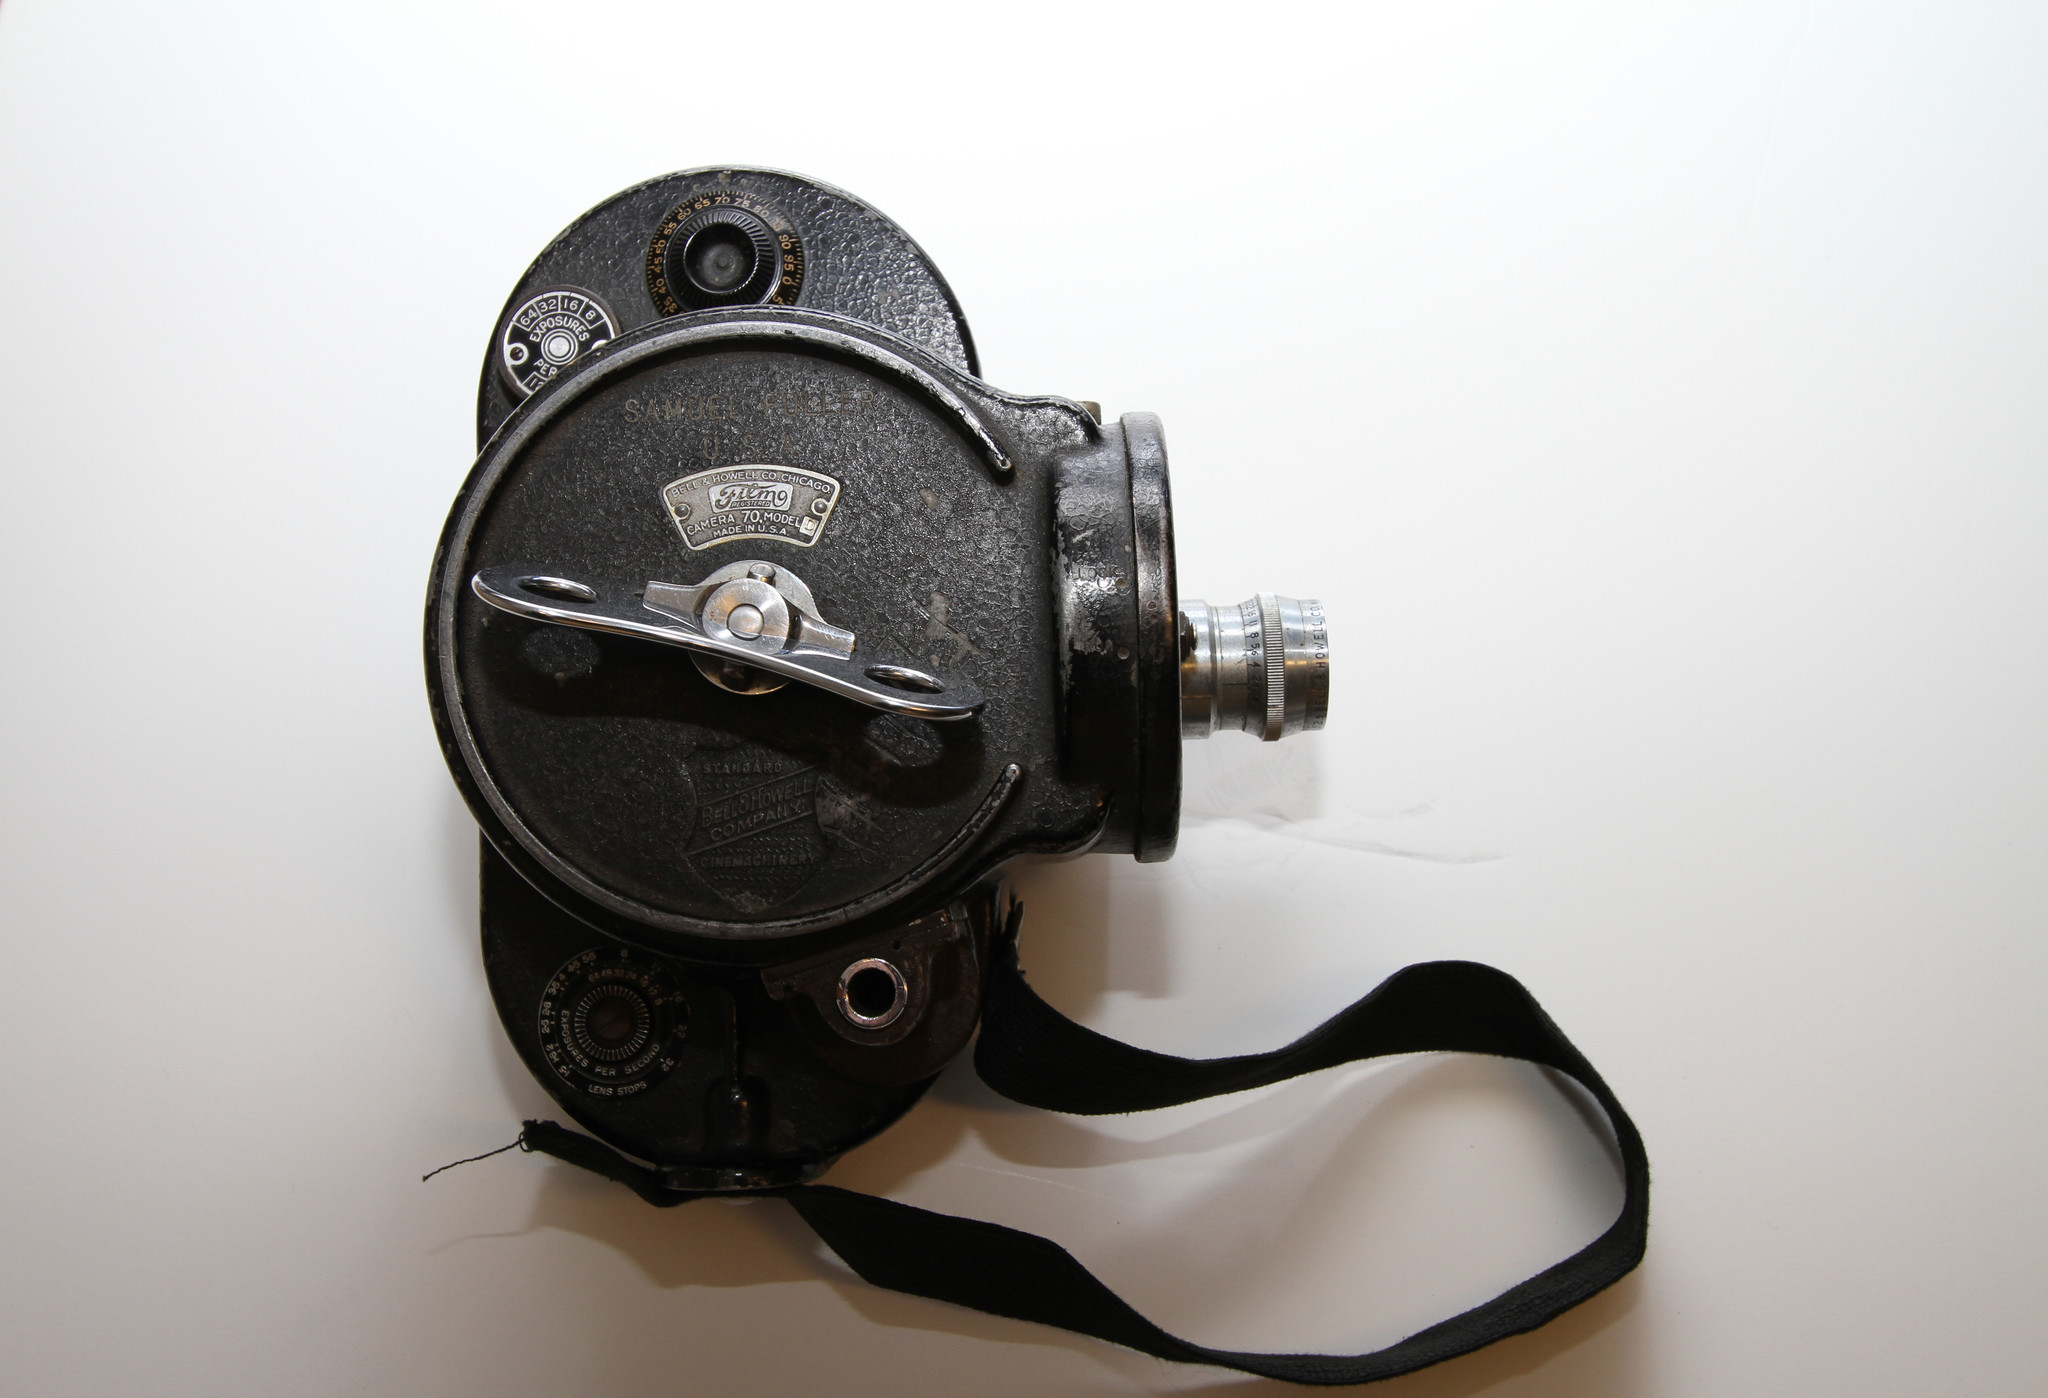 Samuel Fuller's Bell & Howell camera, on view in the exhibition.